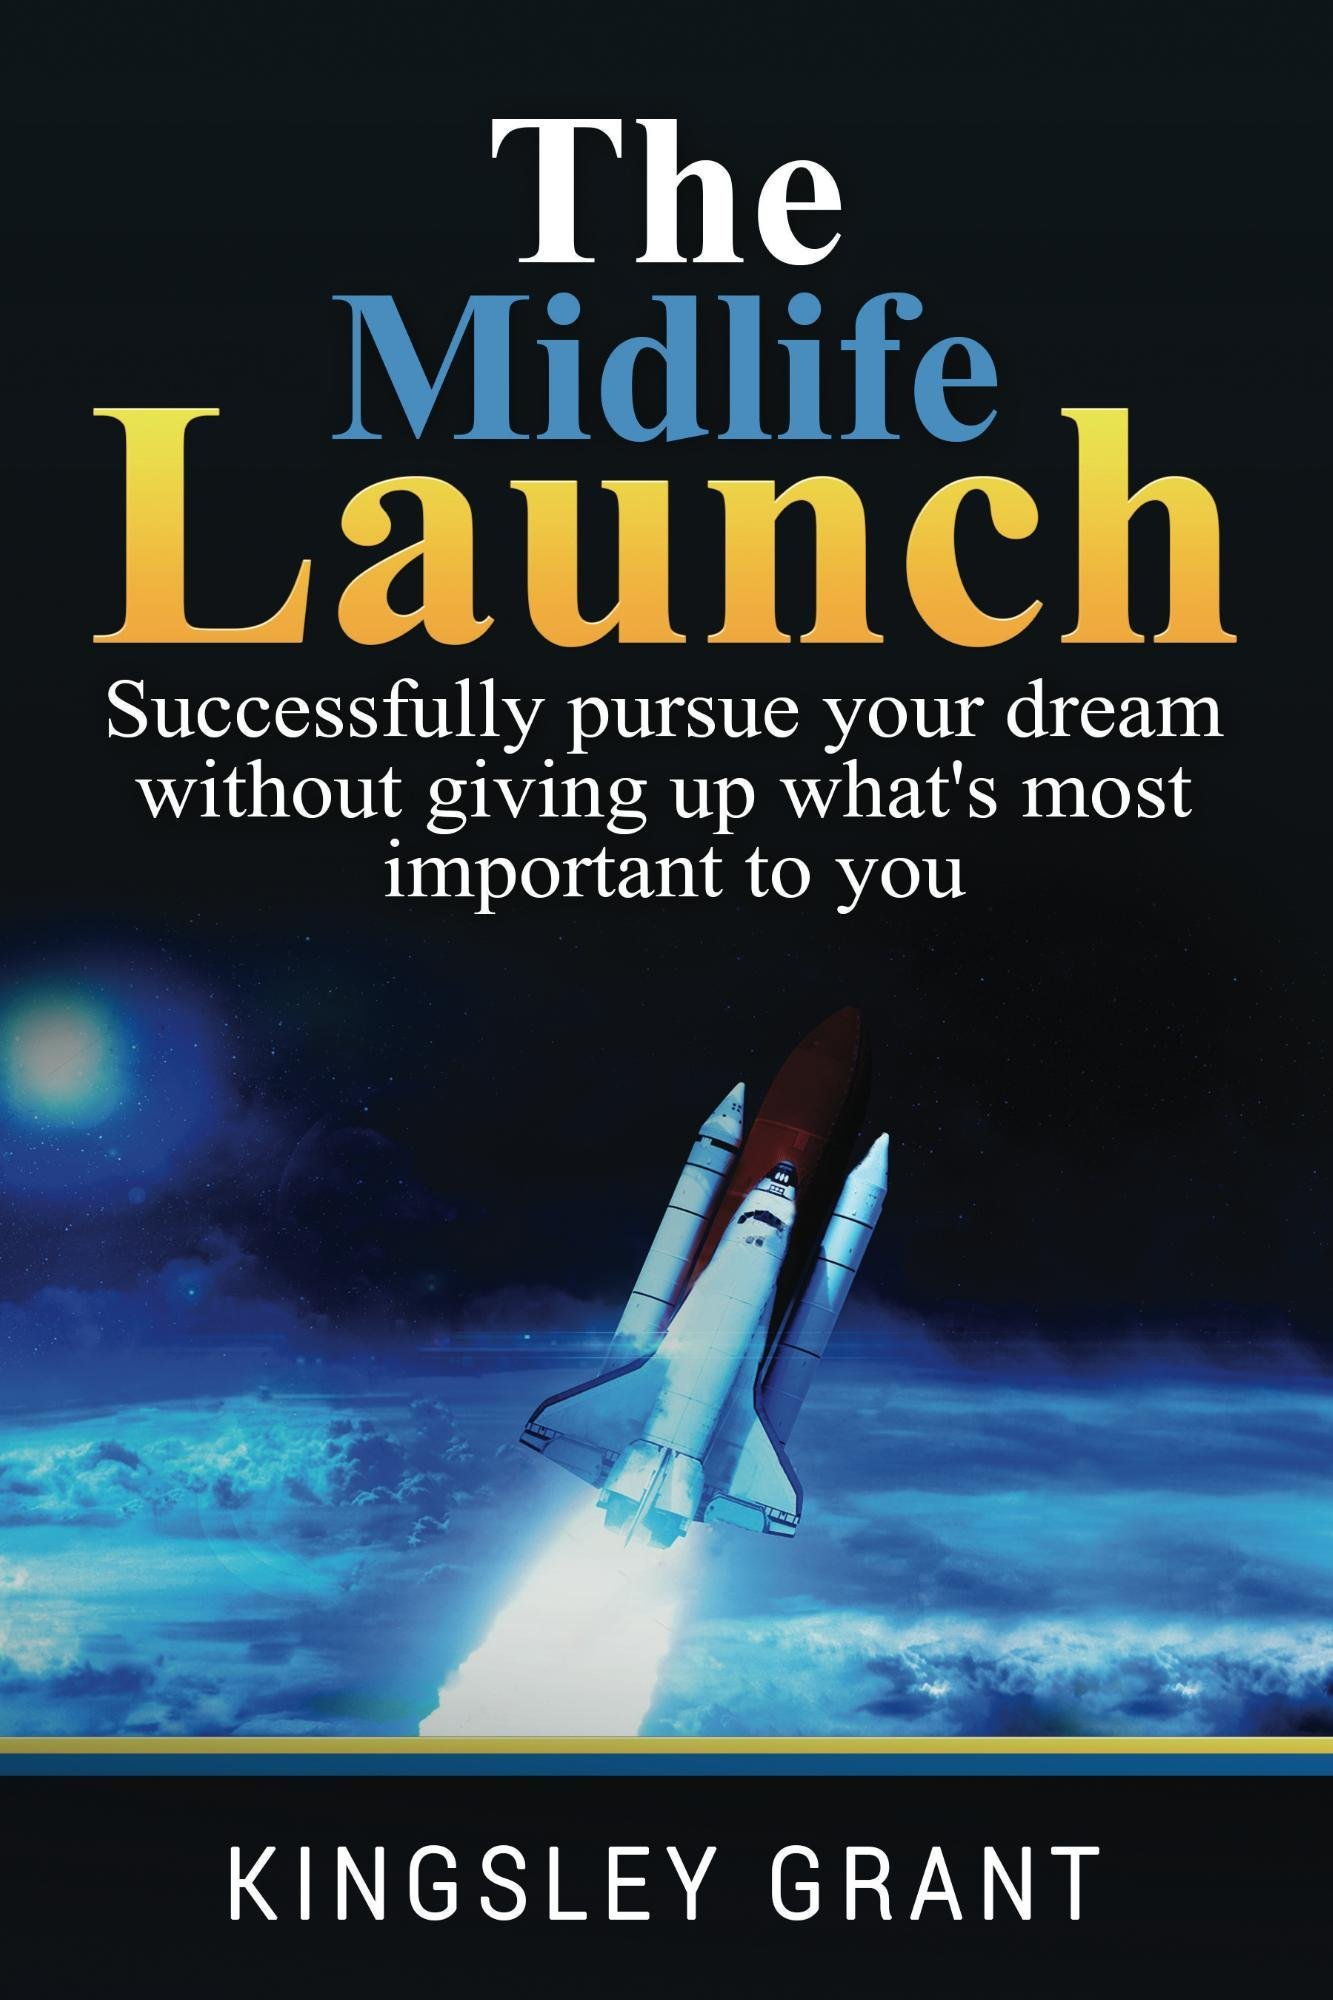 Download Ebook The Midlife Launch: Successfully Pursue Your Dream Without Giving Up What's Most Important To You